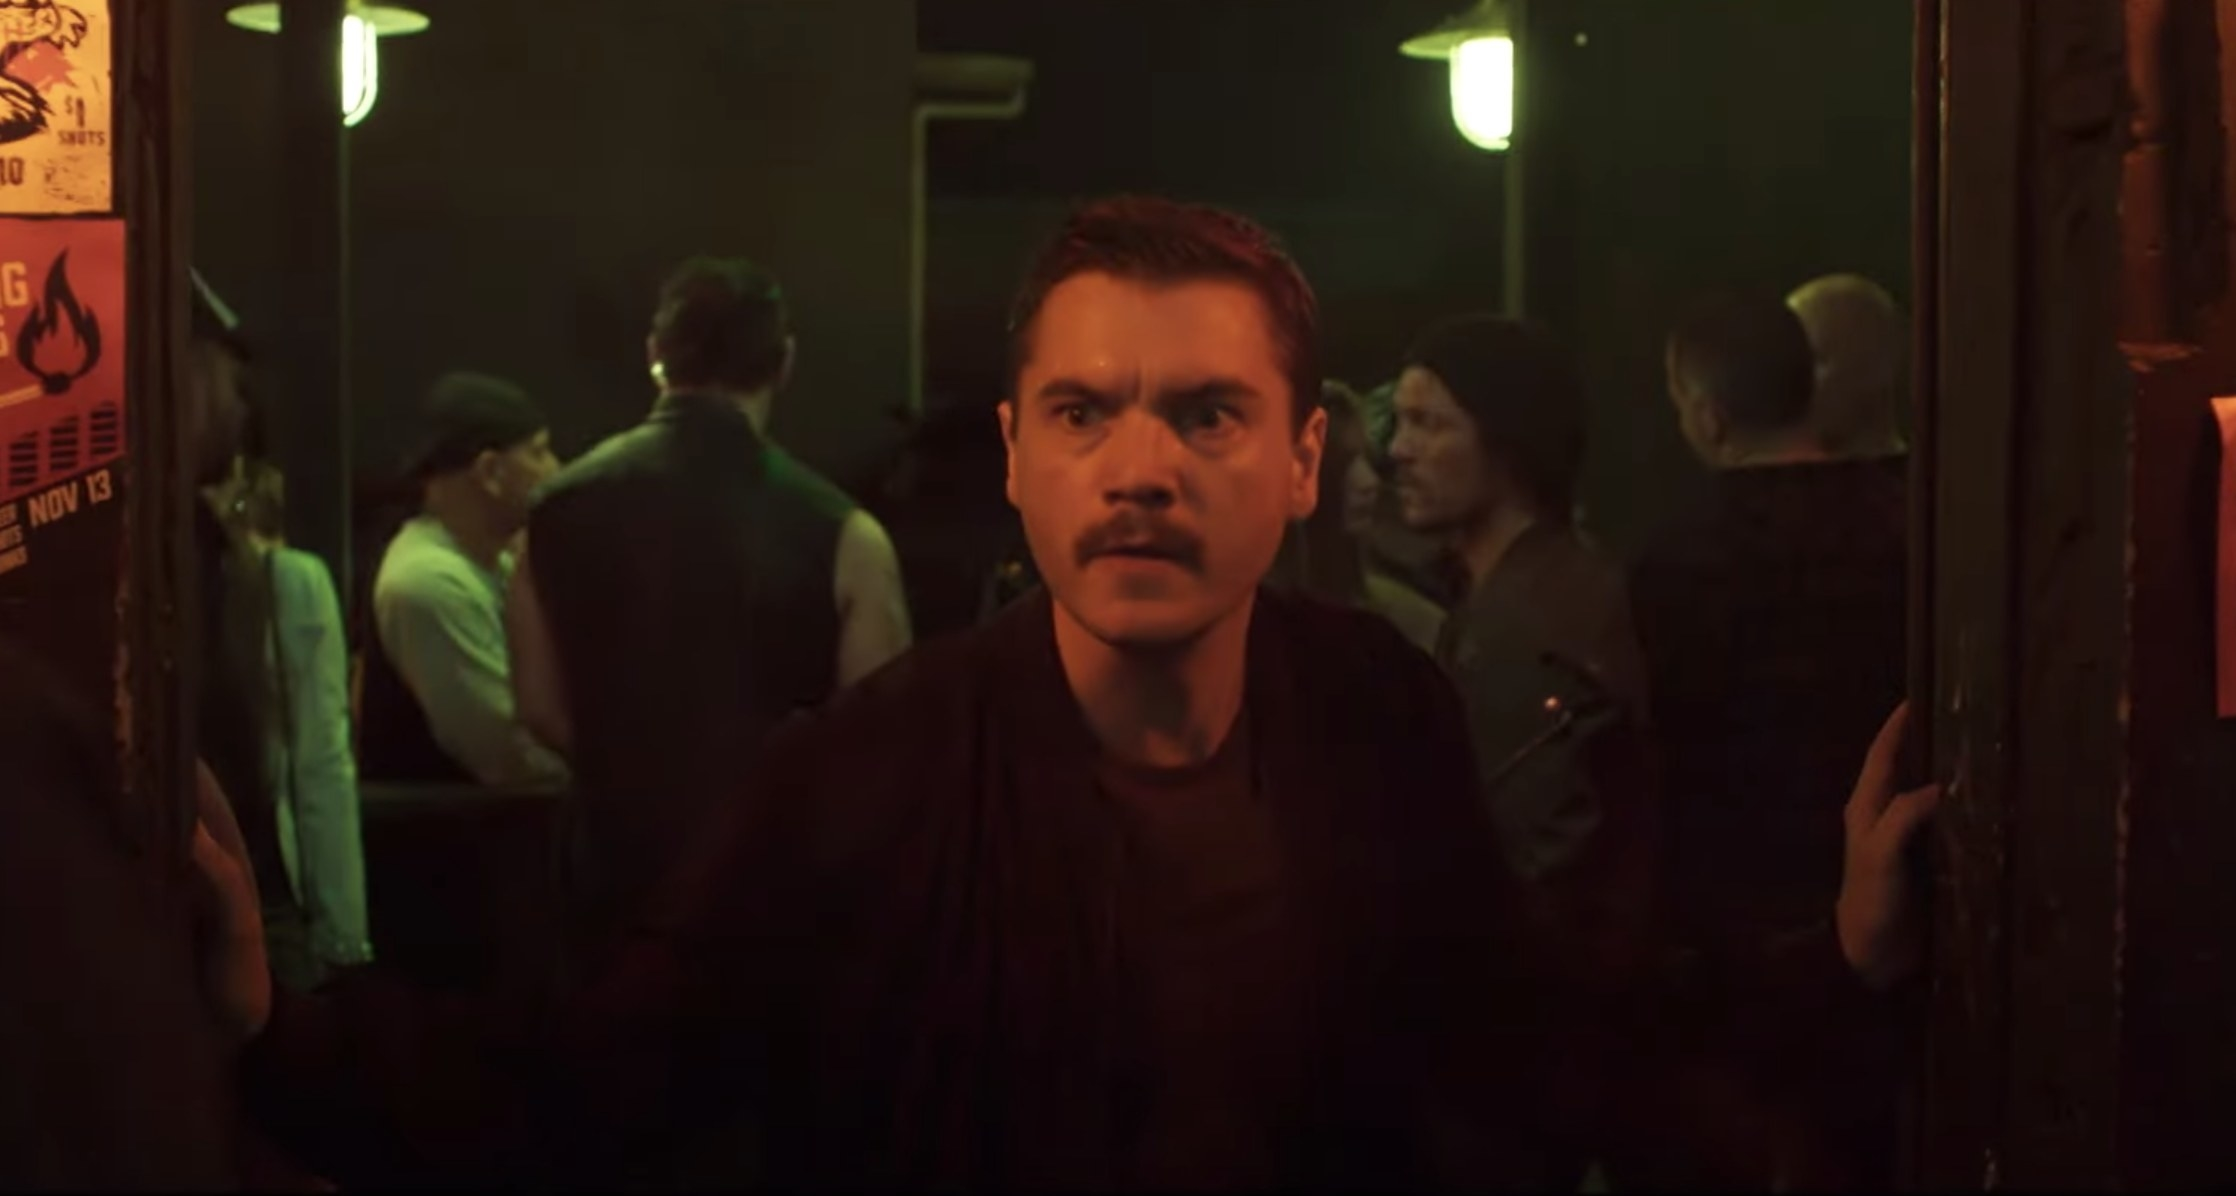 Emile walks into a bar and looks concerned in a screenshot from the film